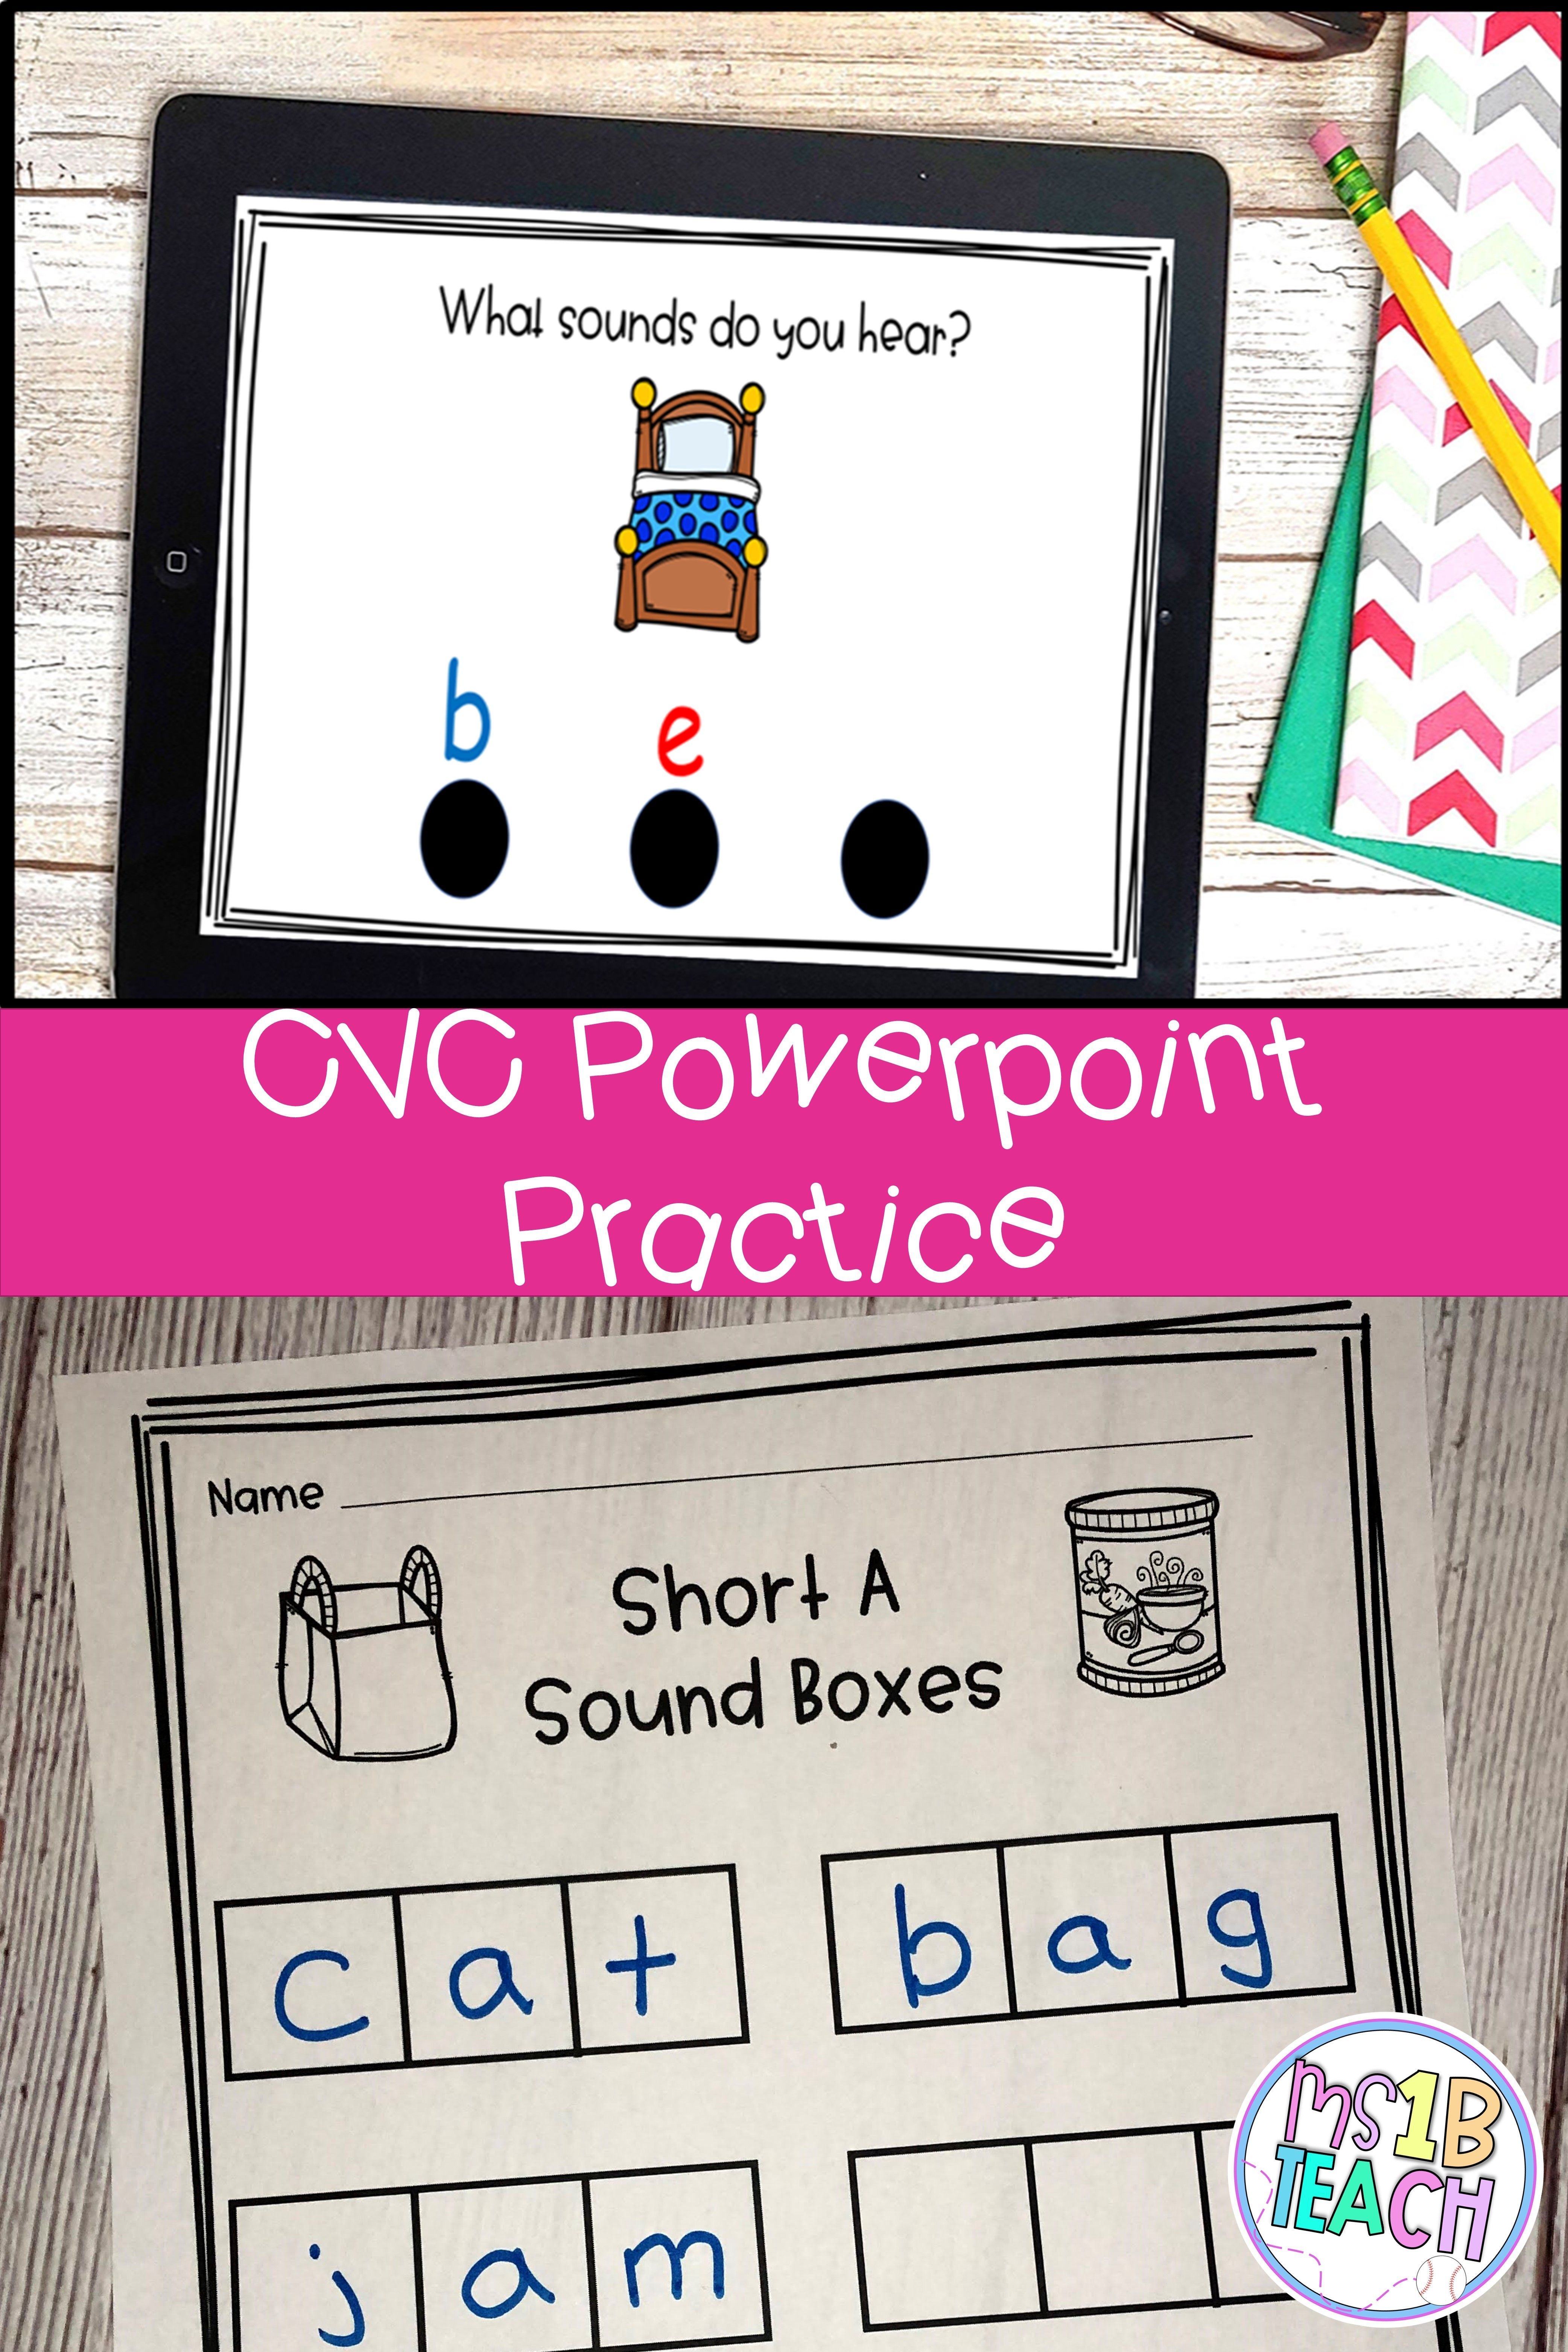 Cvc Practice Activity With Powerpoint In